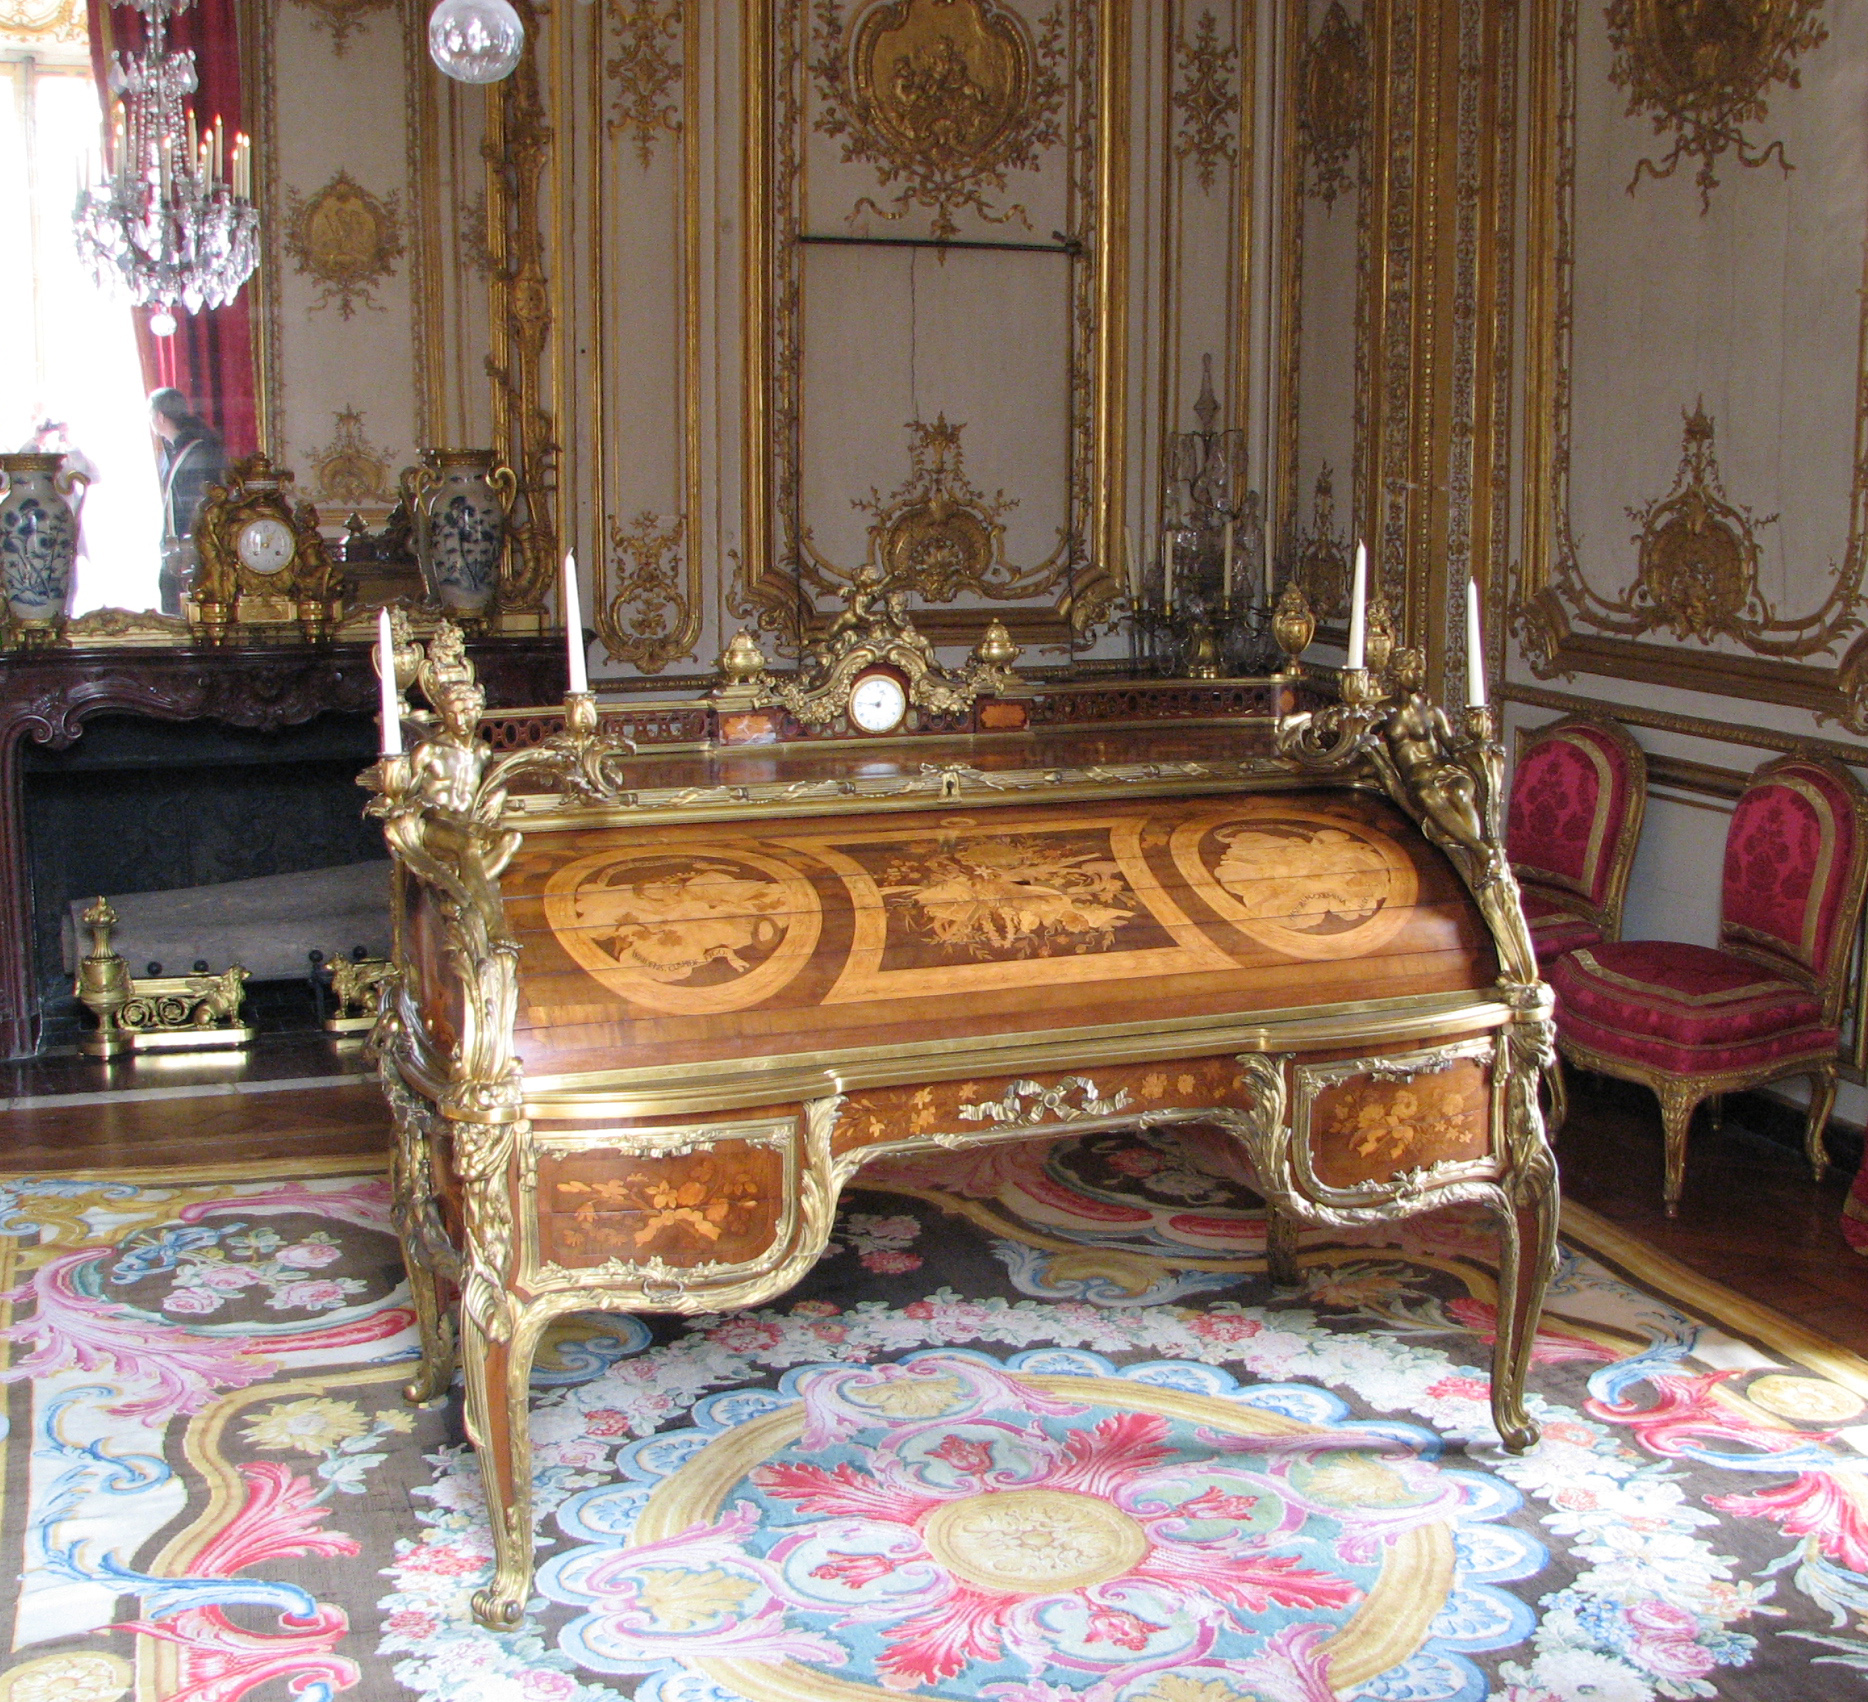 file bureau du roi vue de face avec pi wikimedia commons. Black Bedroom Furniture Sets. Home Design Ideas